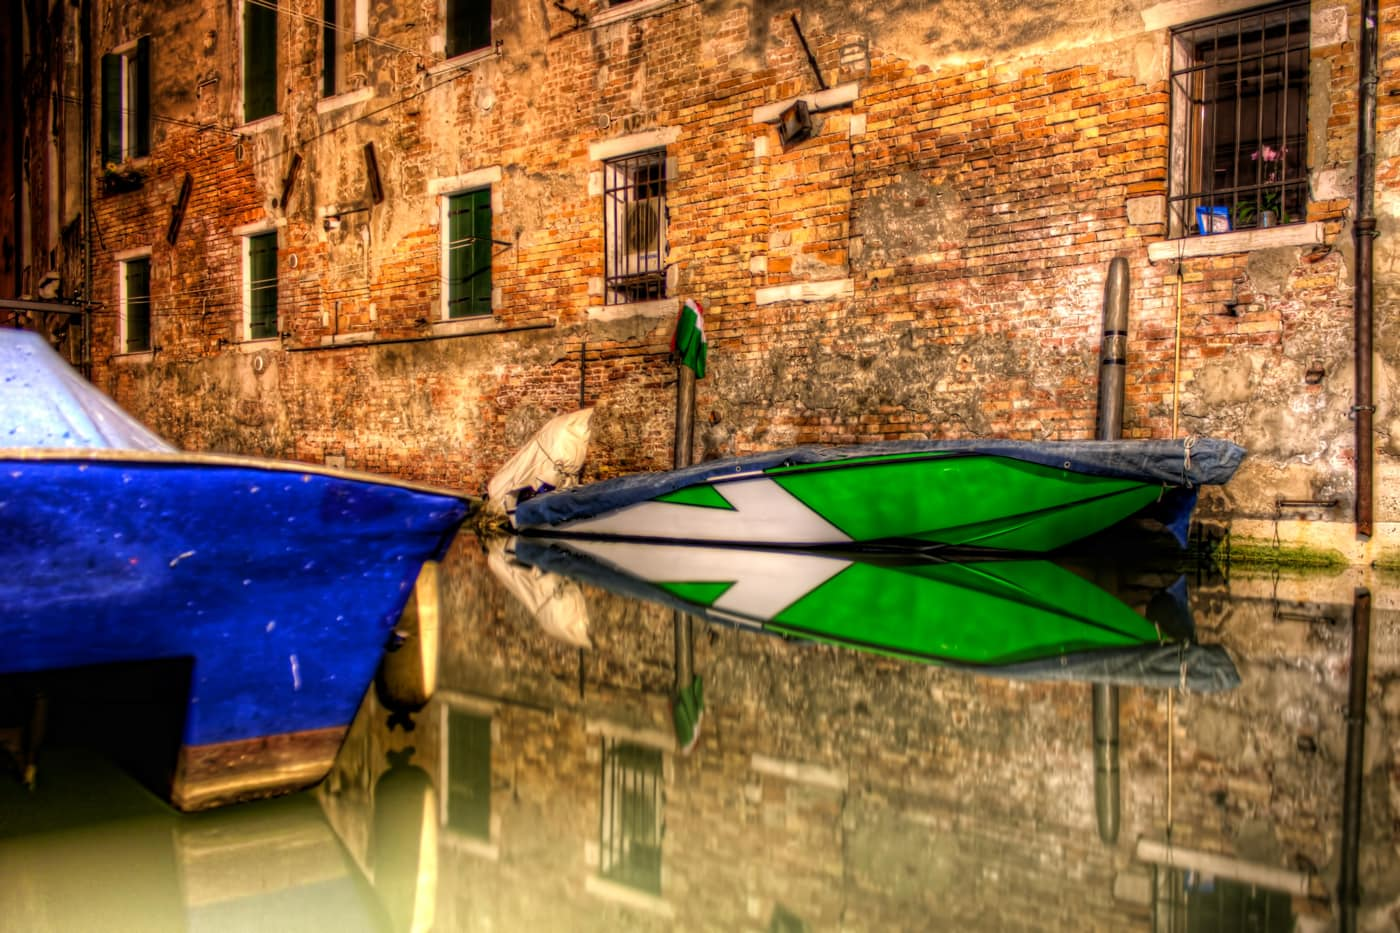 Speed Boat at night in the Venetian Ghetto in Venice, Italy